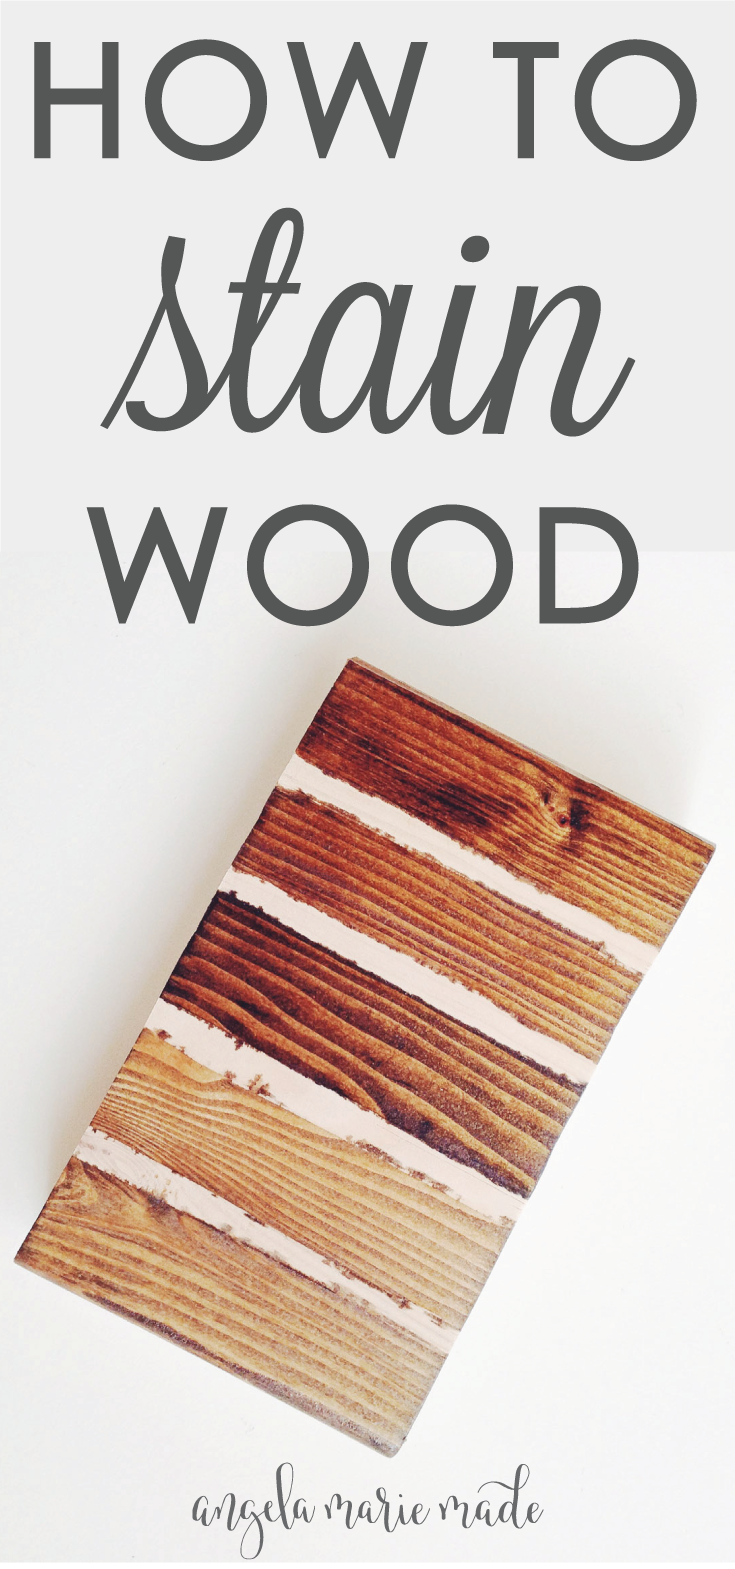 How to Stain Wood - Angela Marie Made